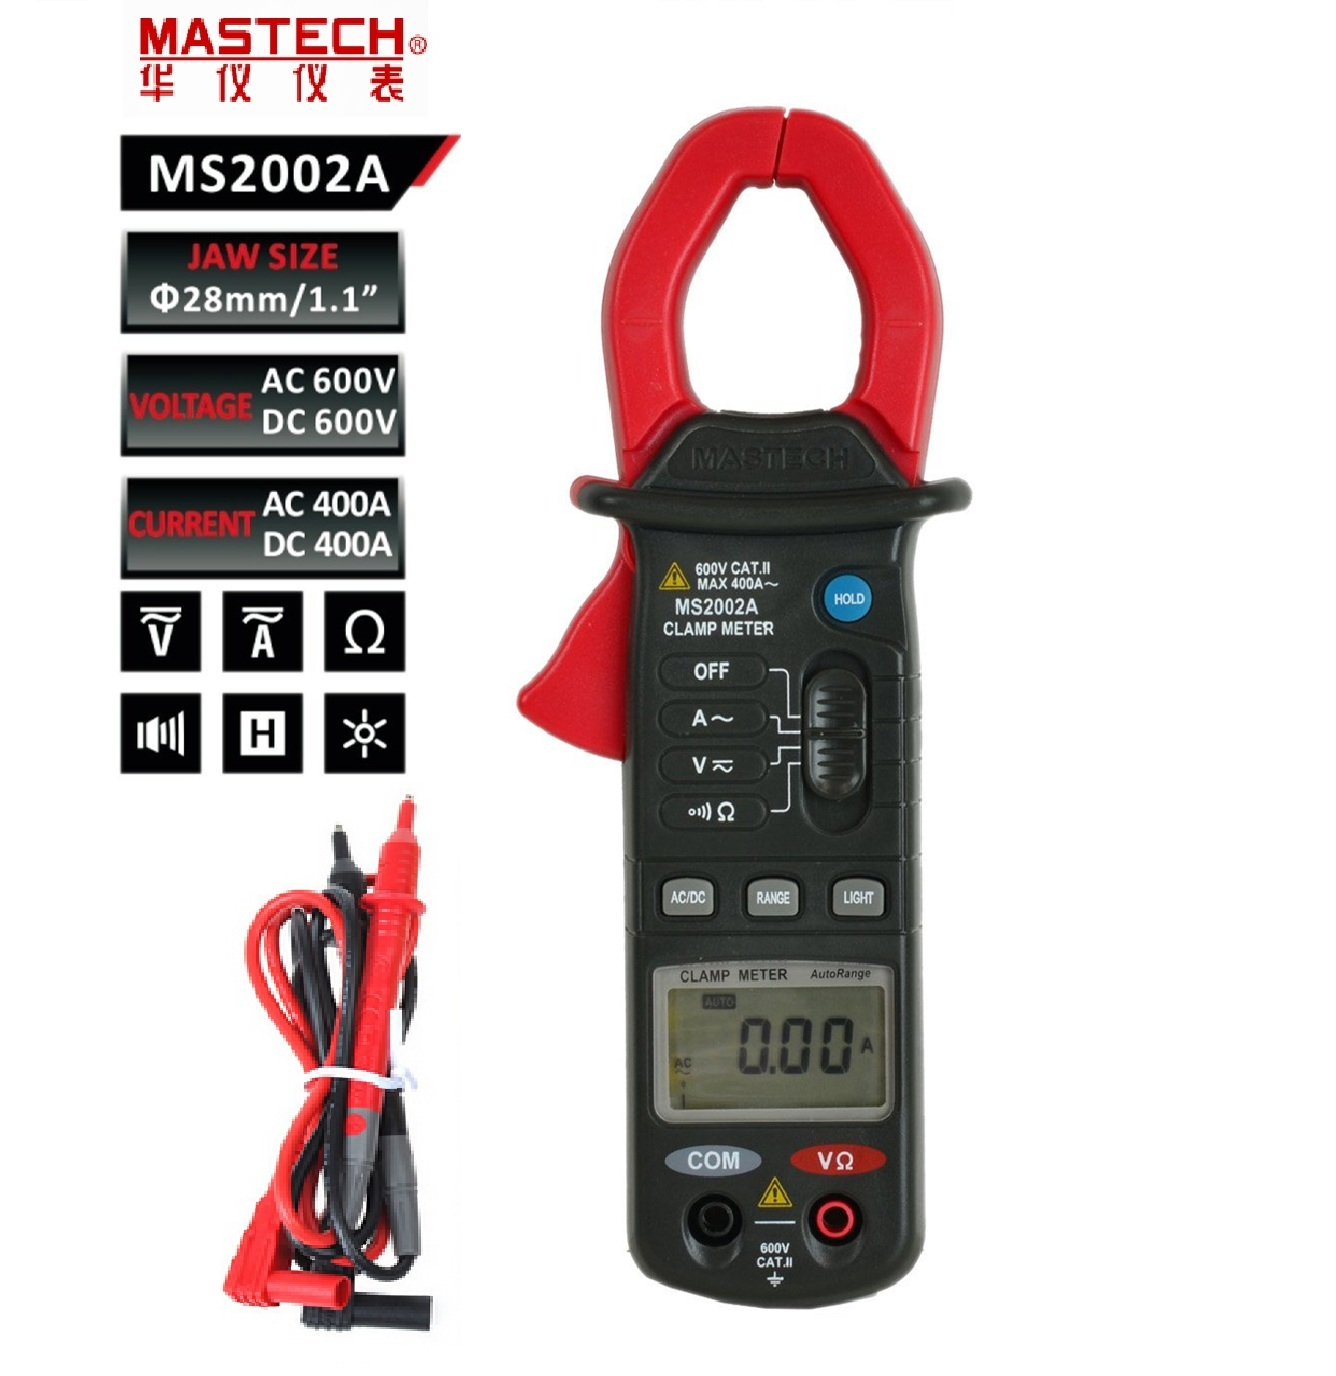 Digital Clamp Meter MASTECH MS2002A 4000 count display 3 3/4 Mini 600V/400A AC current Autorange DC voltage Resistance tester mas tech pro mini mastech ms3302 ac current transducer 0 1a 400a clamp meter test hot sales